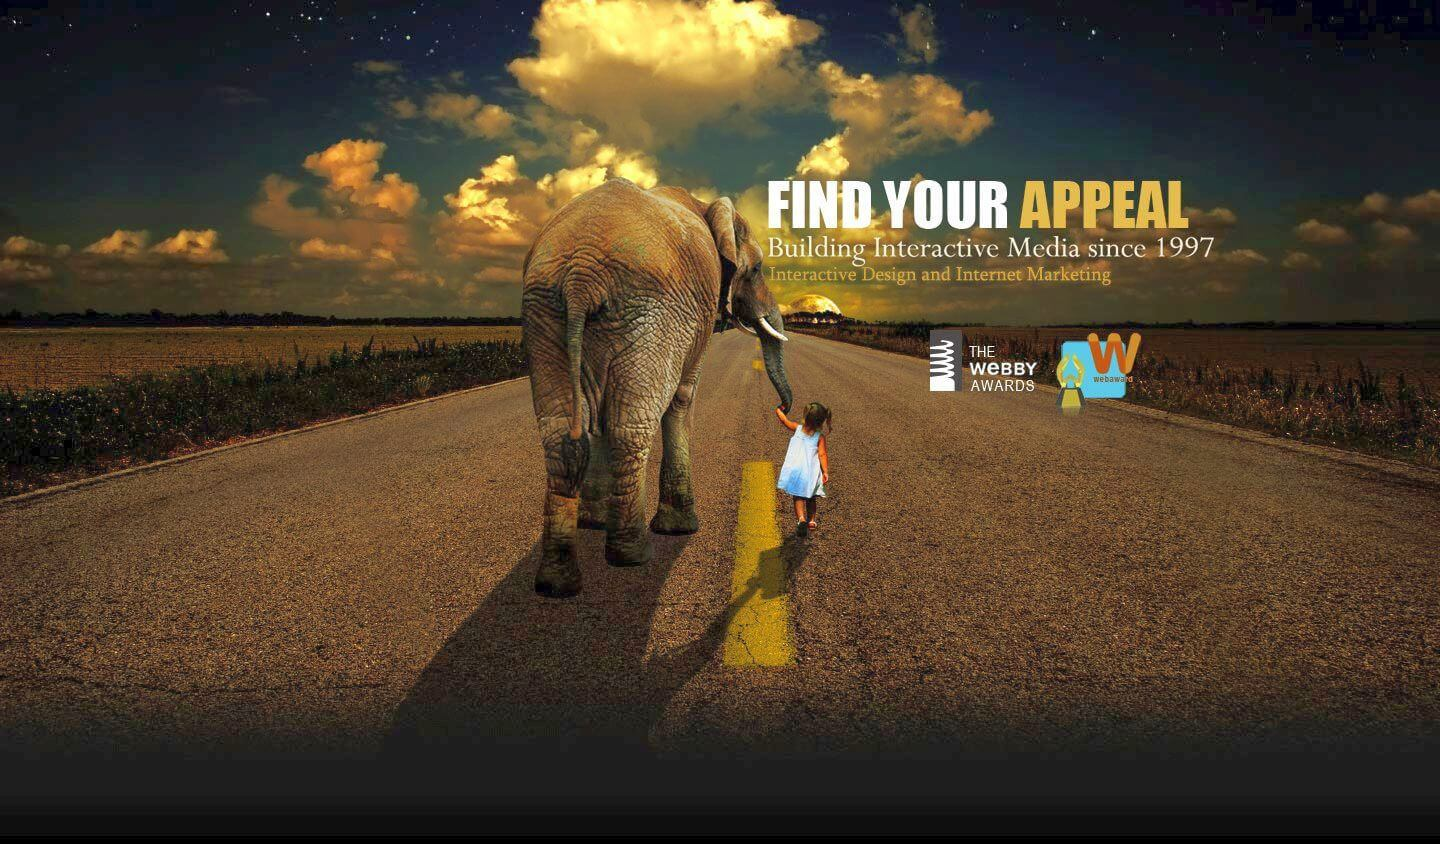 Find Your Appeal